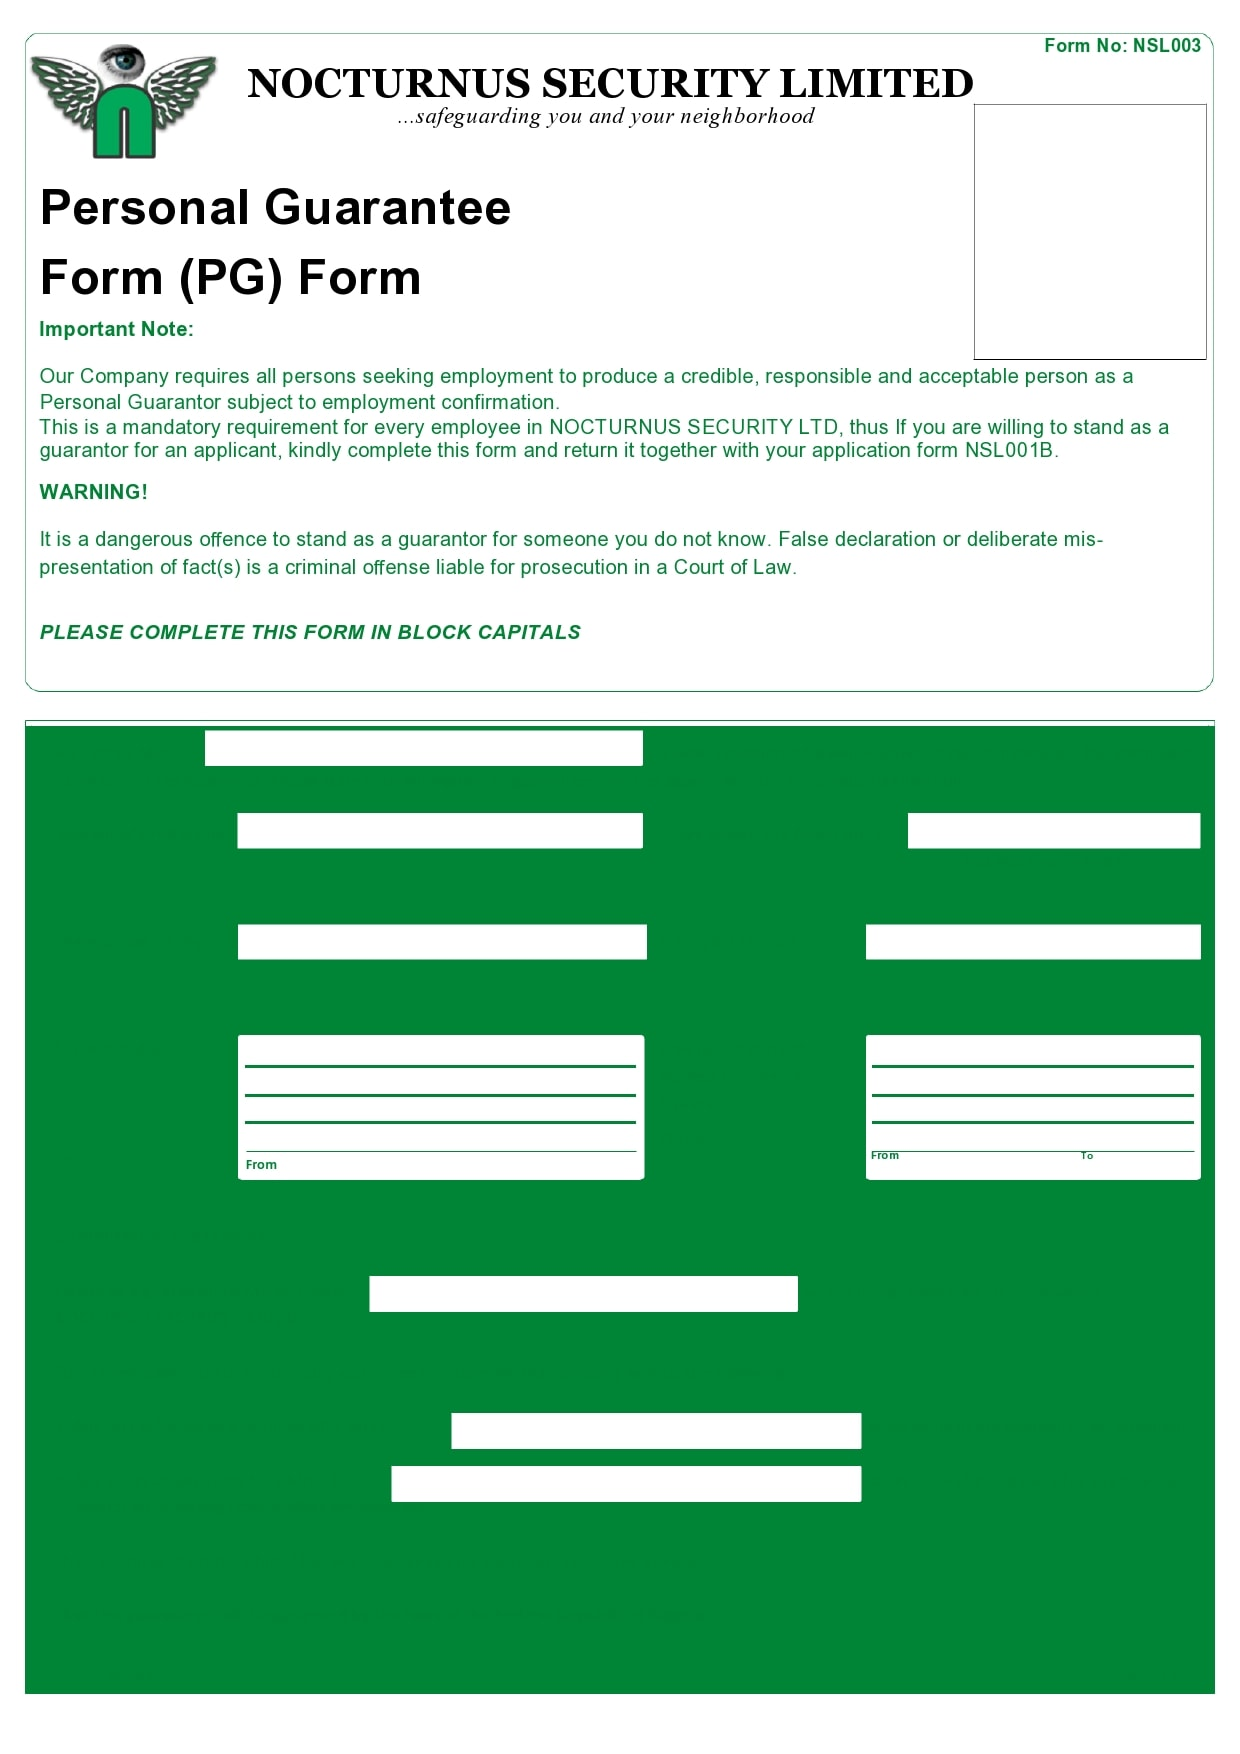 personal guarantee form 18